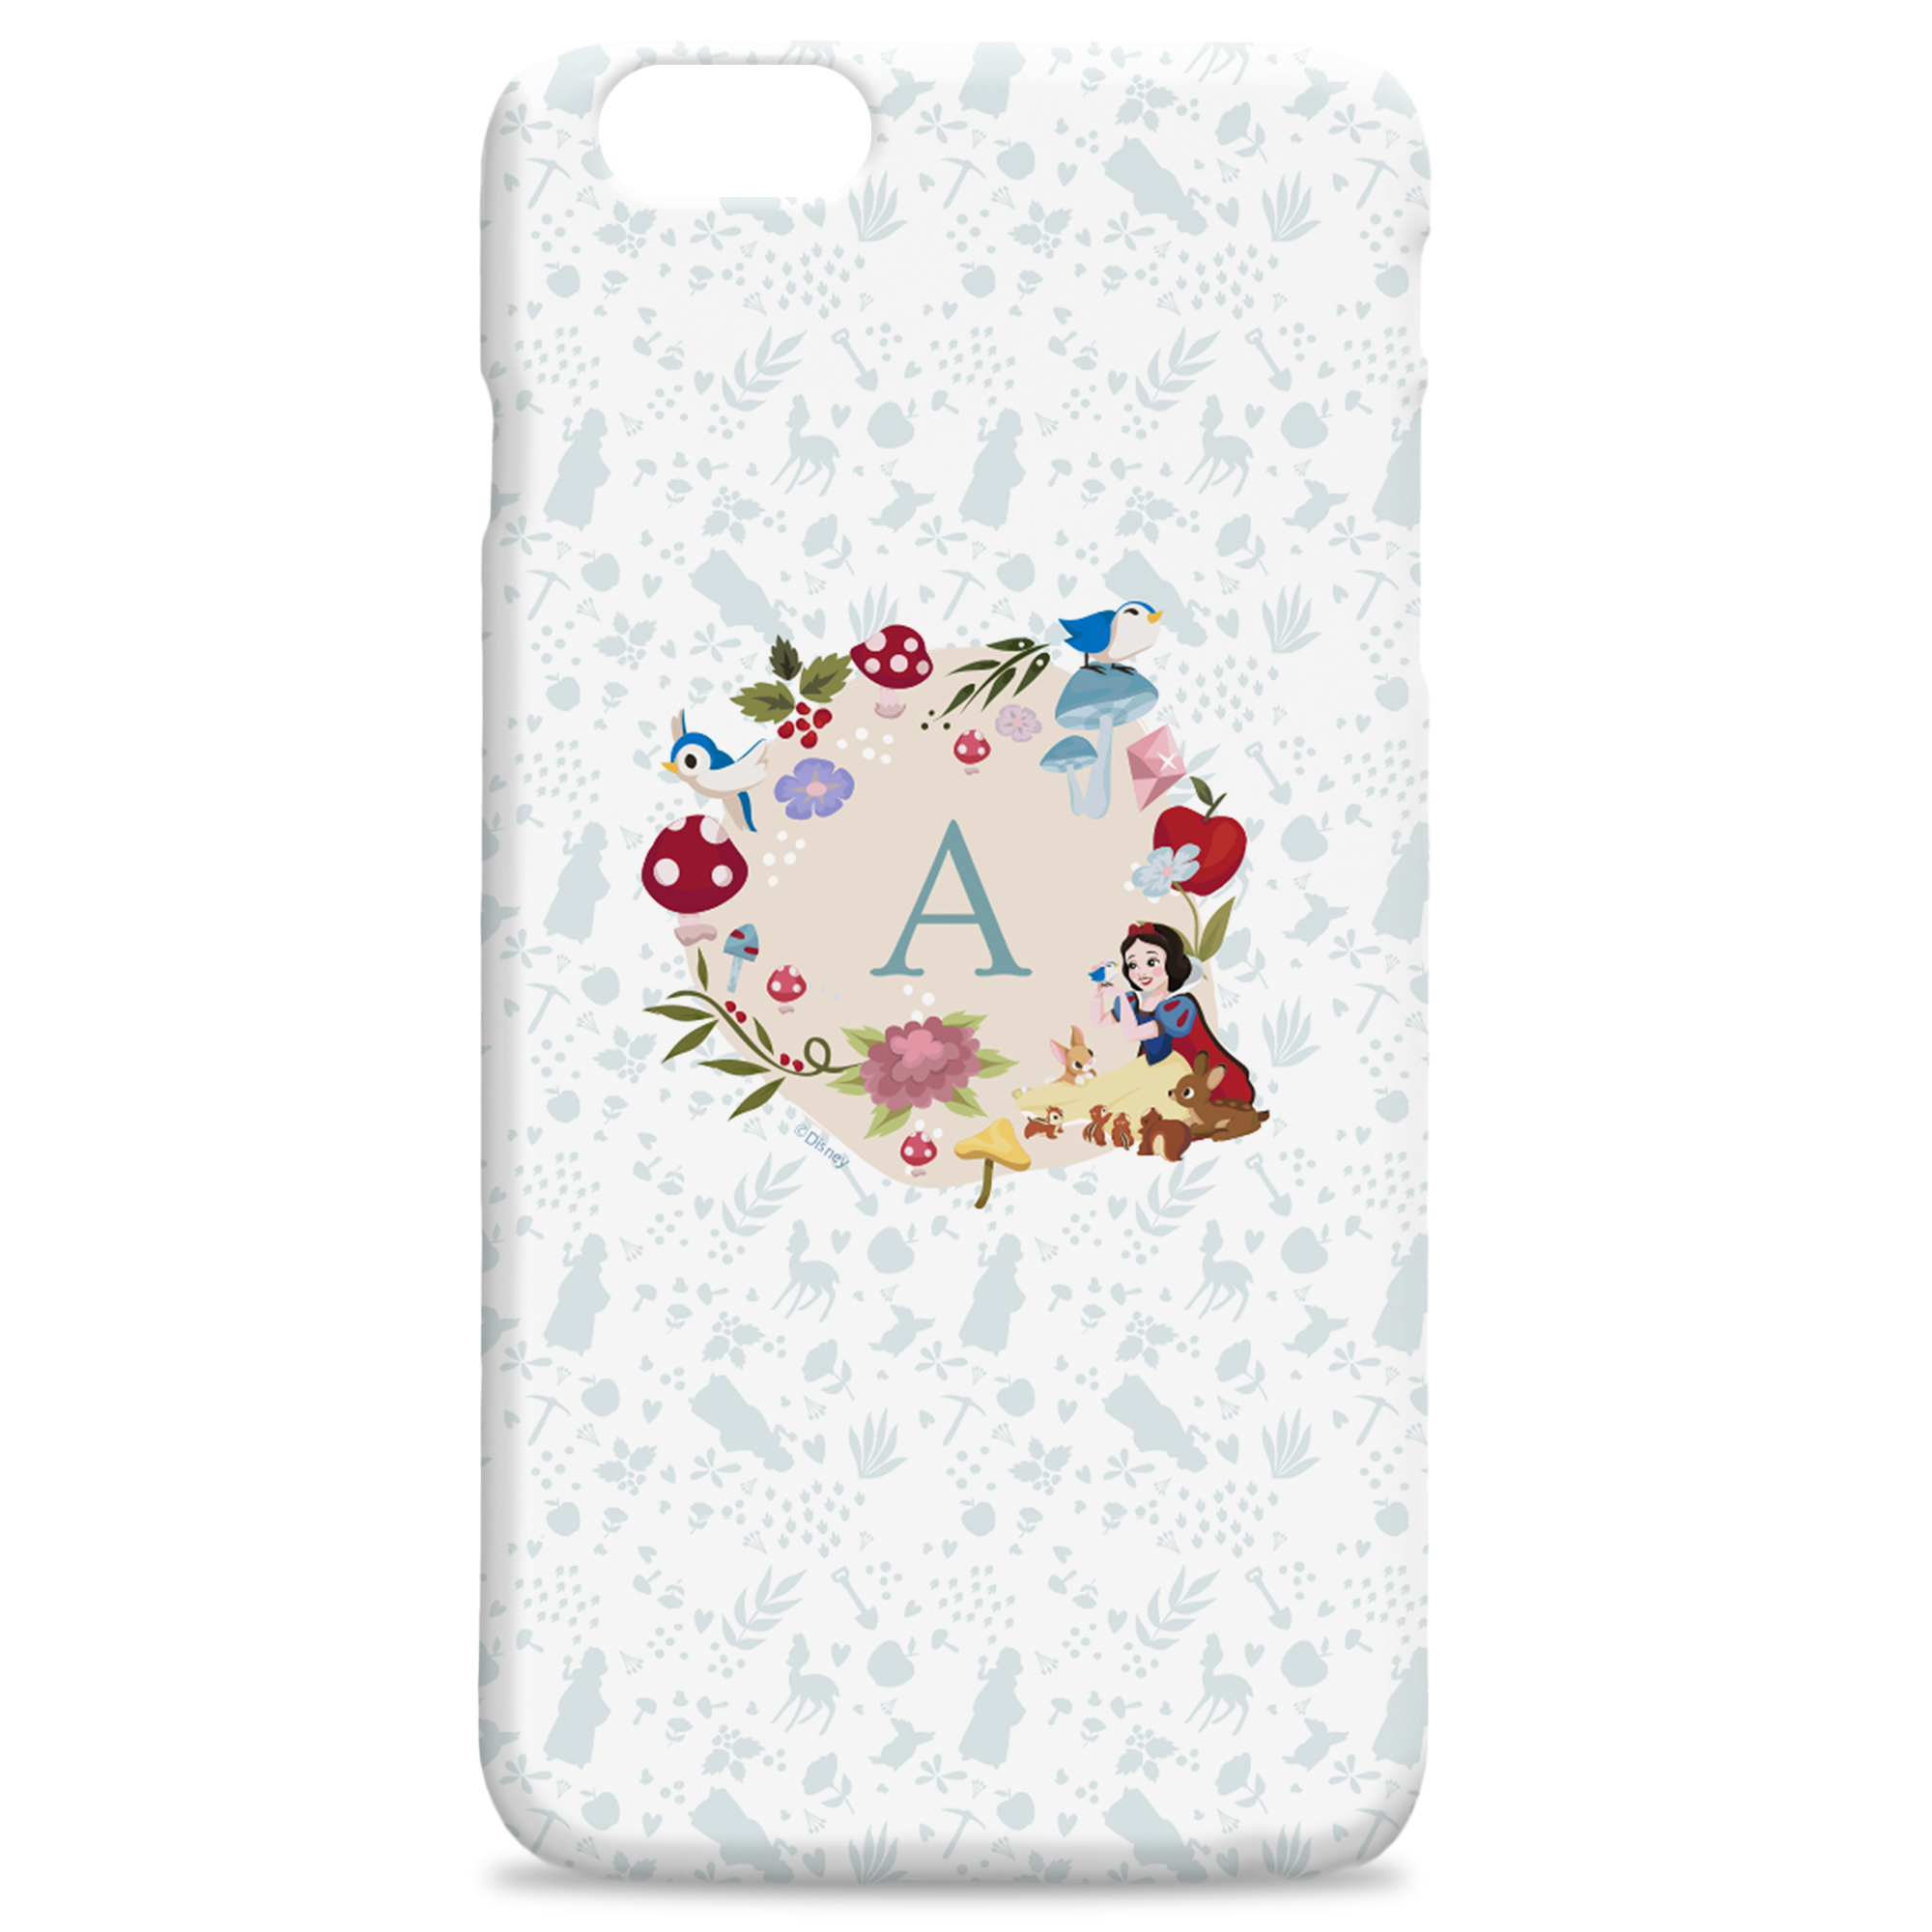 Disney Princess Snow White Initial Hard Back Phone Case